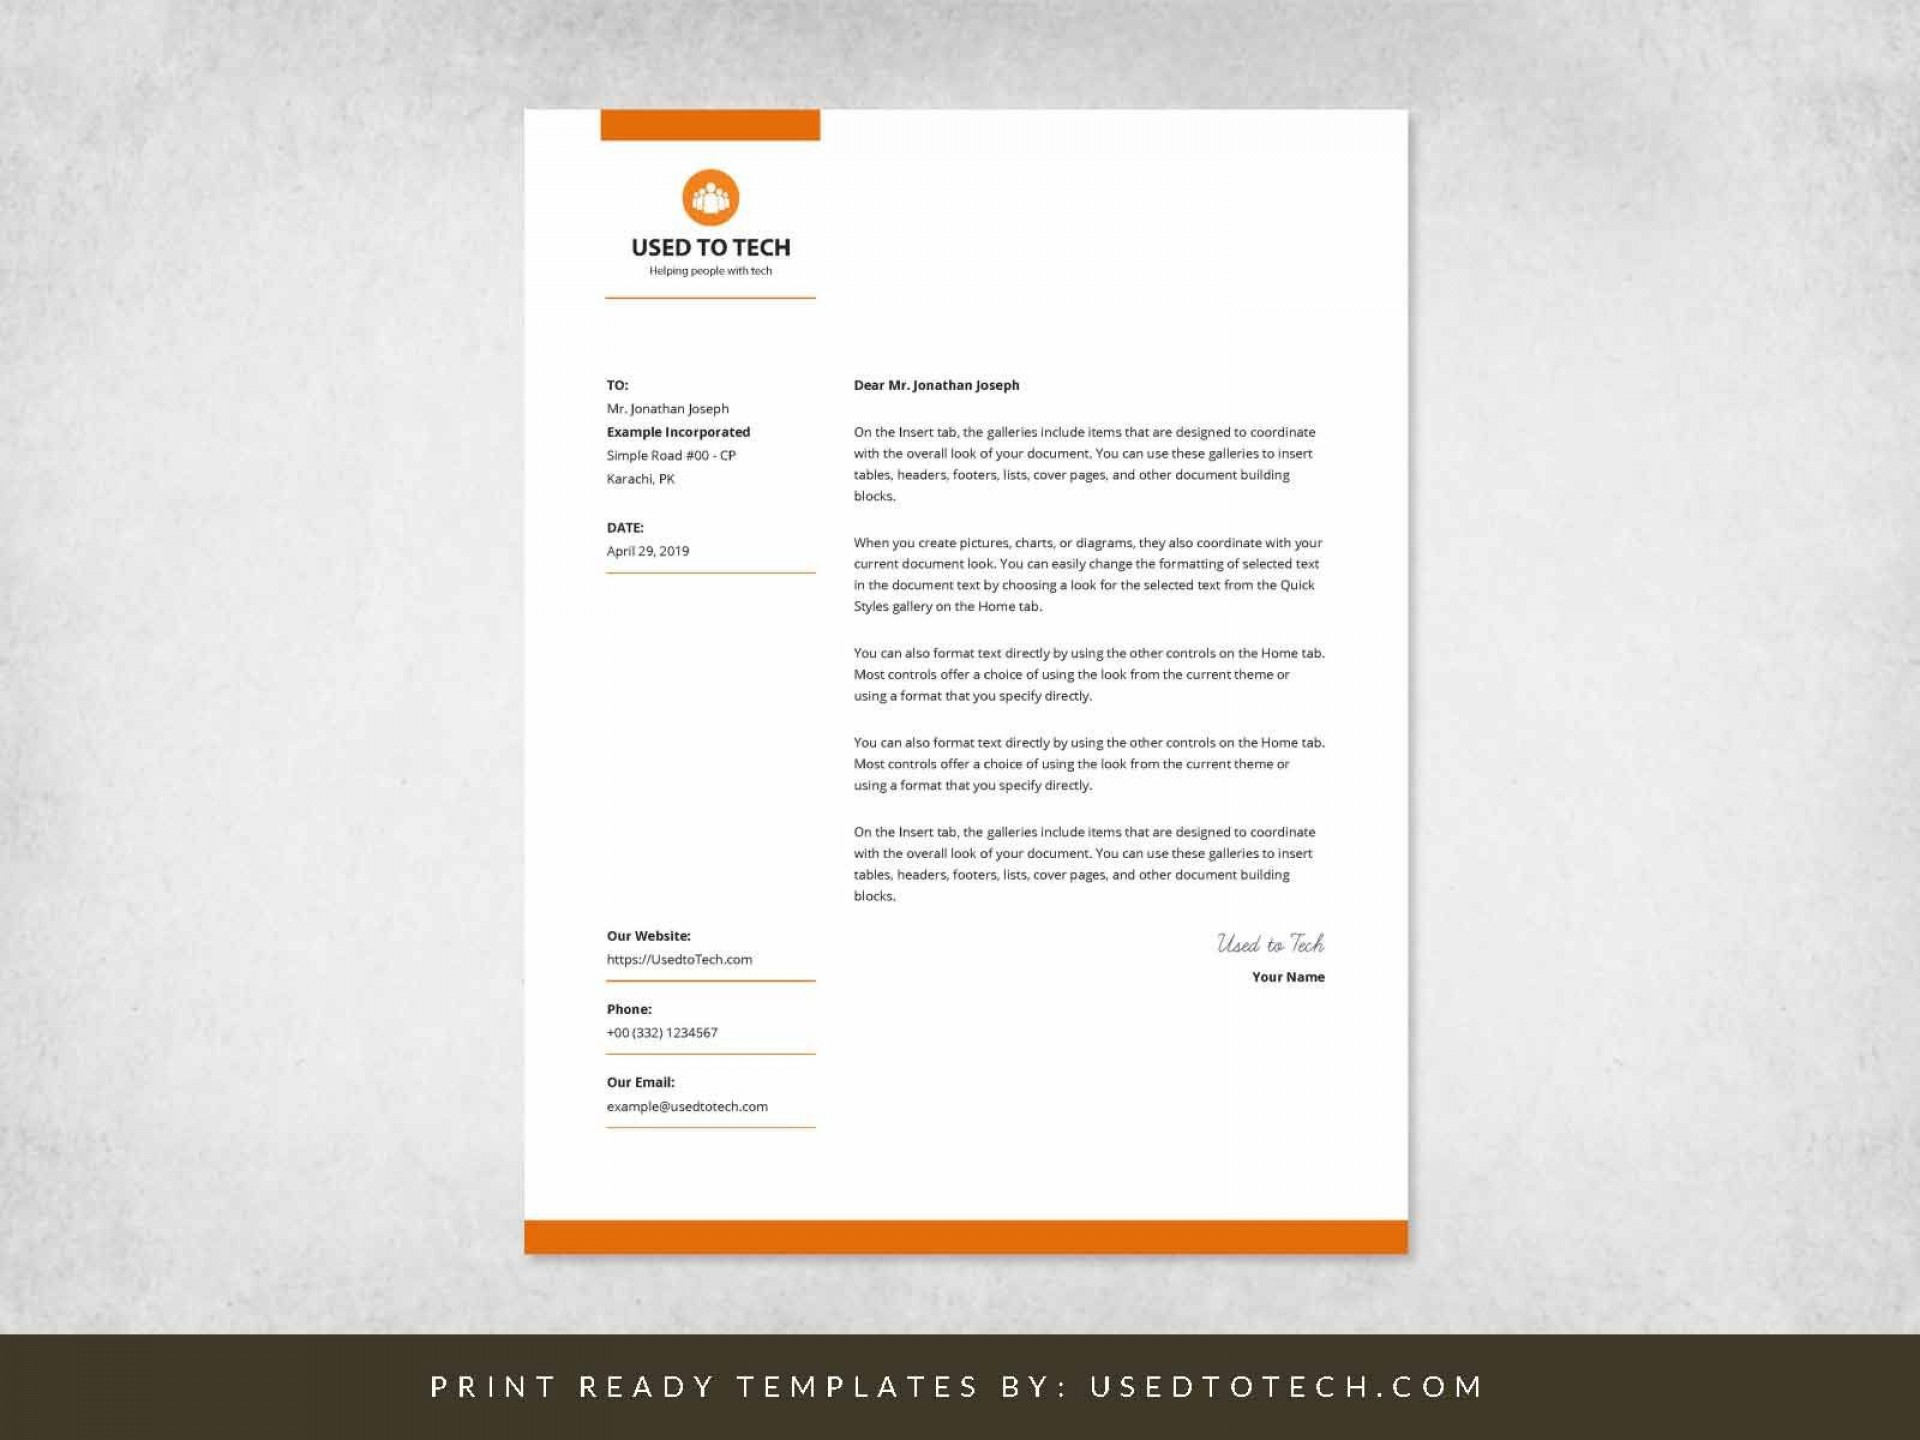 000 Beautiful Microsoft Word Free Template High Def  Templates For Report Invoice Uk Download1920